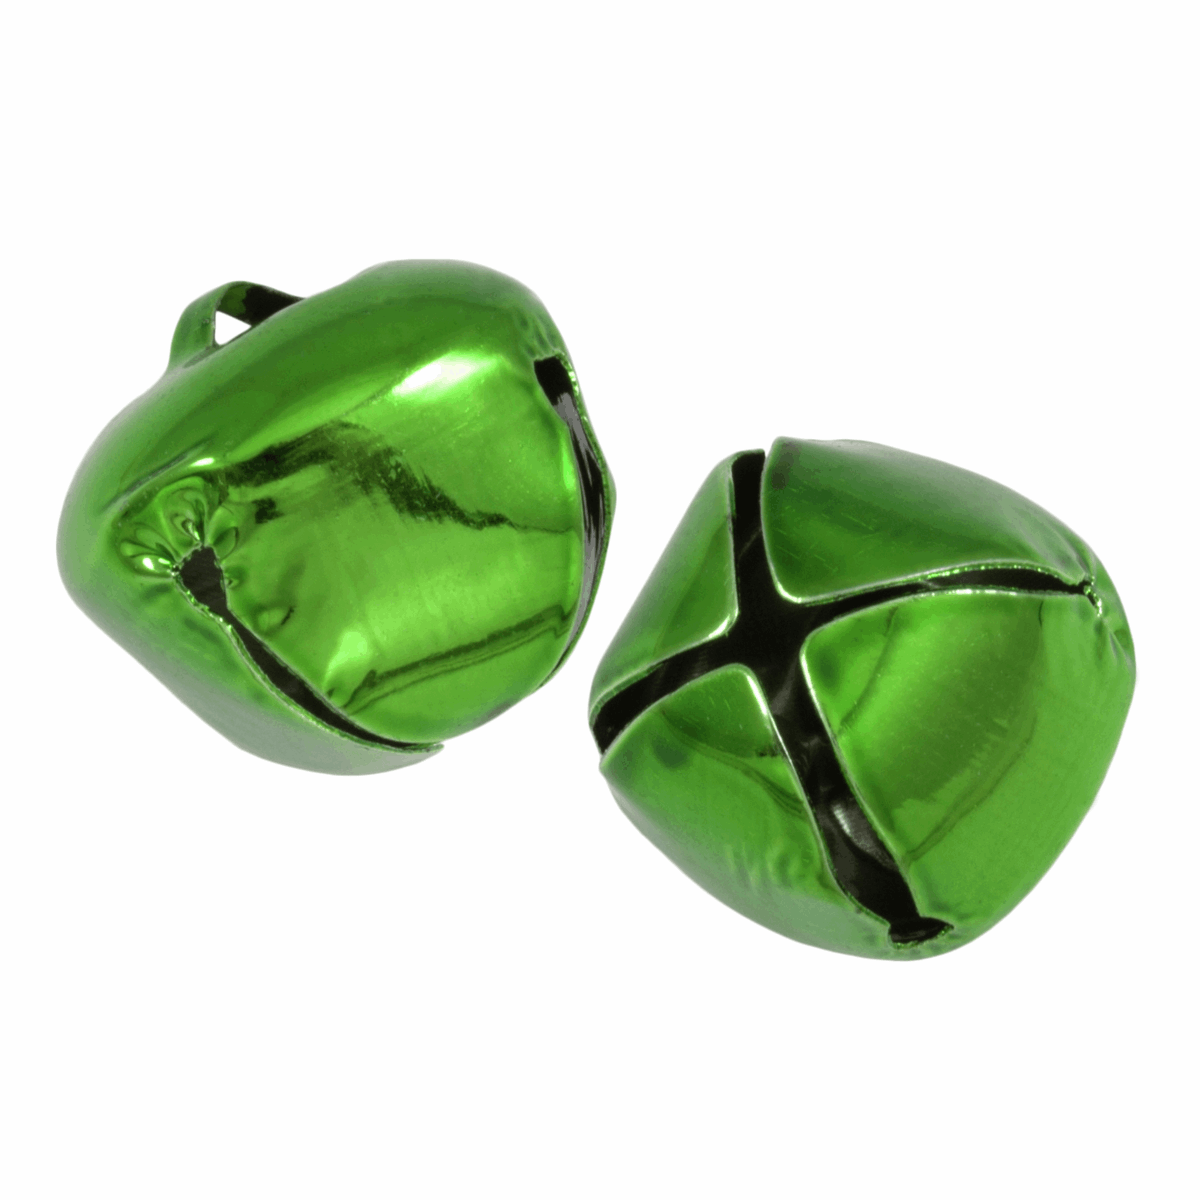 Picture of Bells: Jingle: 30mm: Green: 2 Pieces